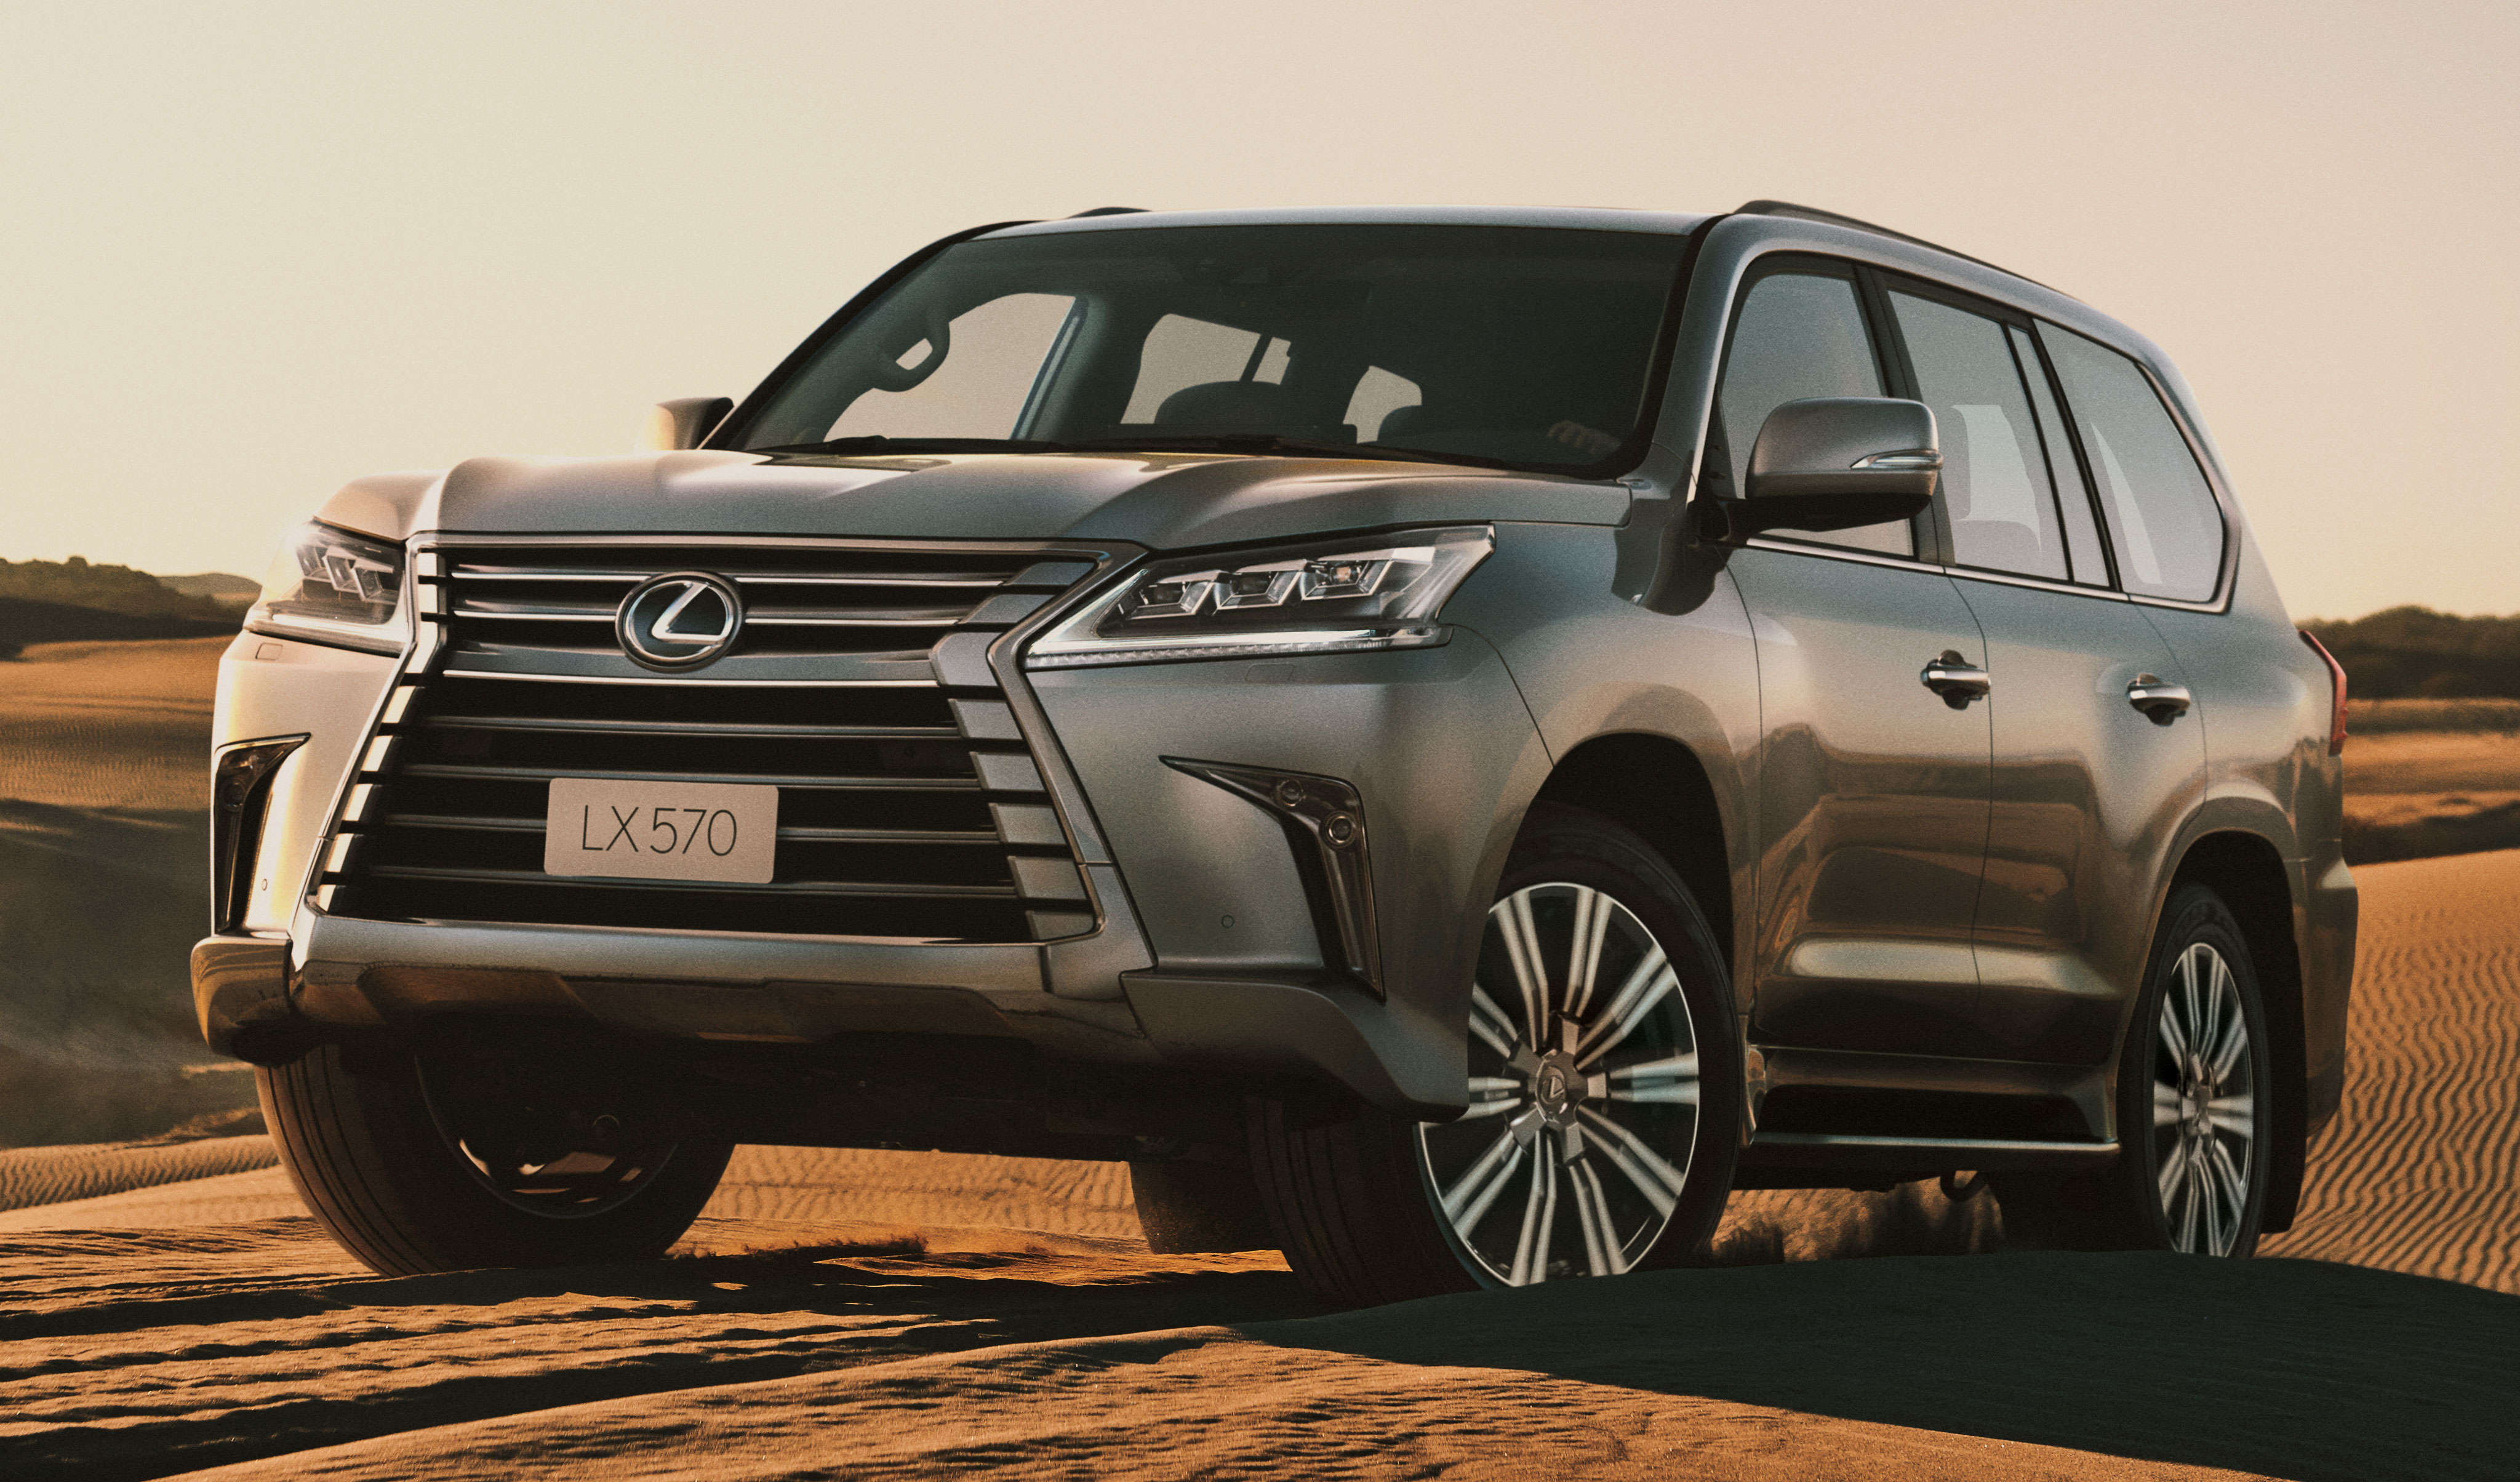 2020 Lexus Lx 570 Suv Open For Booking In Malaysia New Sport Variant Now Priced From Rm1 226 Million Paultan Org